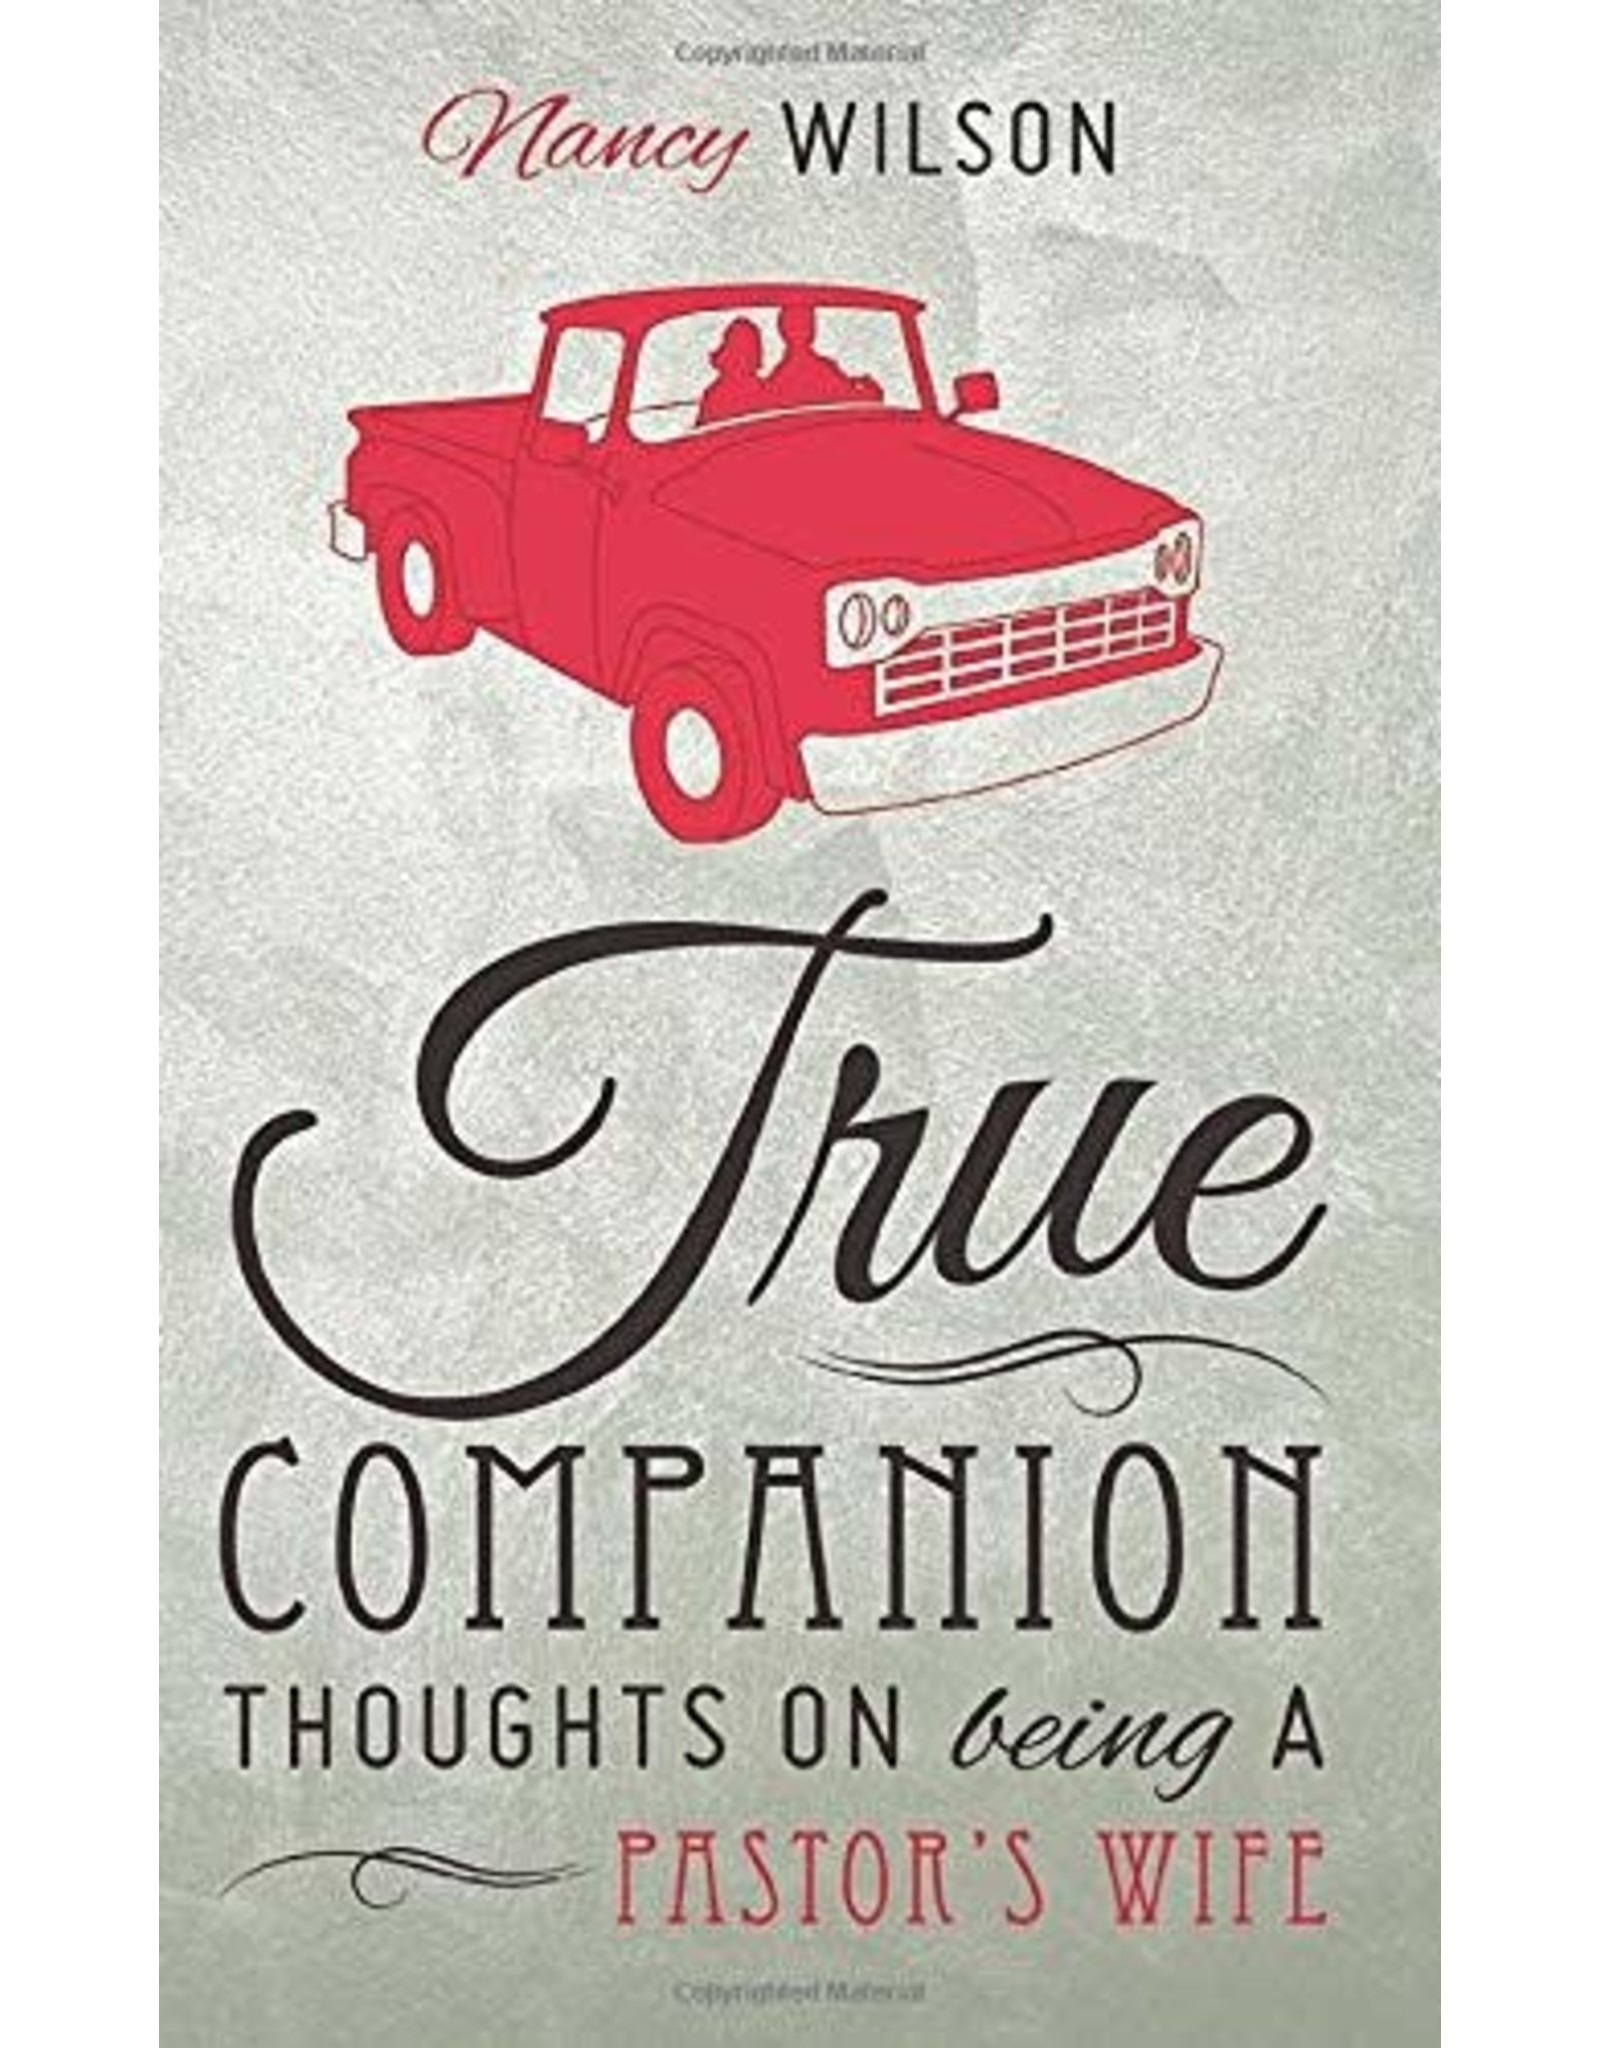 Canon Press True Companion: Thoughts on Being a Pastor's Wife